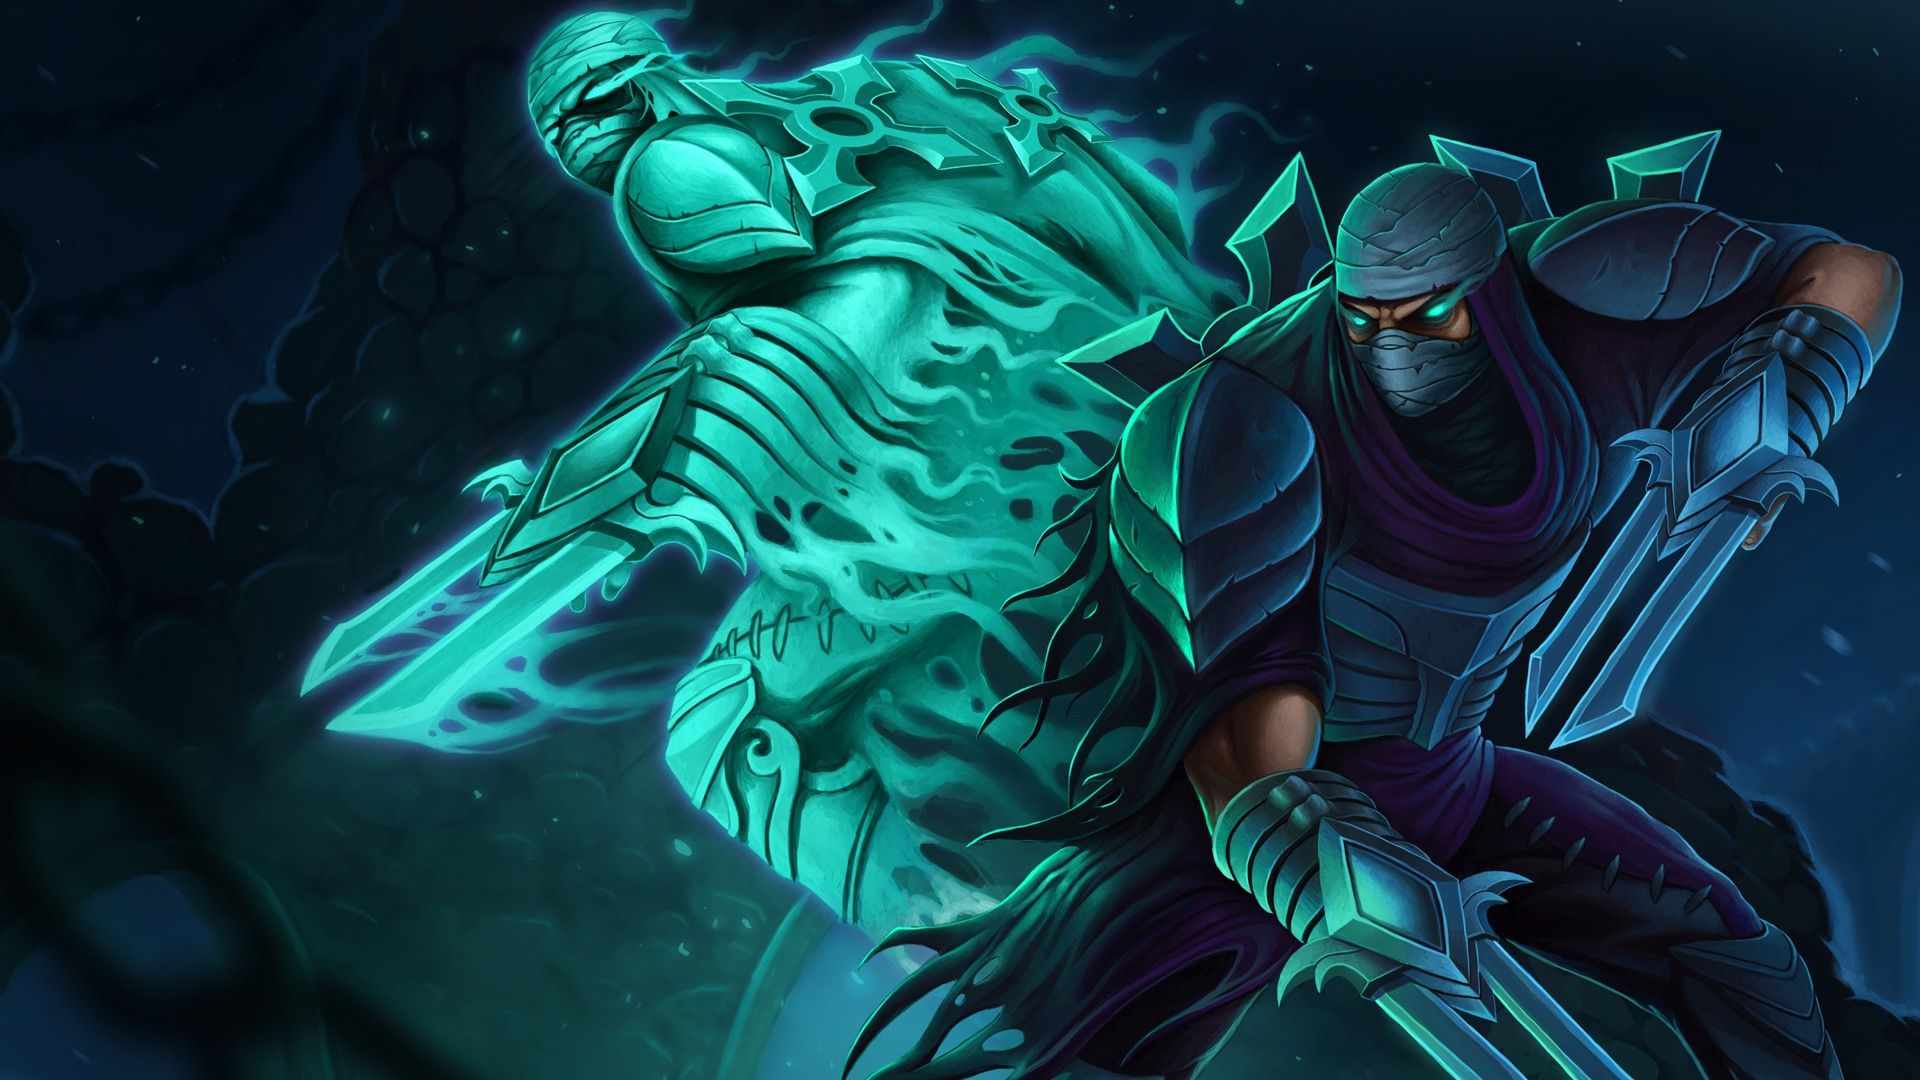 Fanart Zed Mummy Shadow League Of Legends Best Gaming